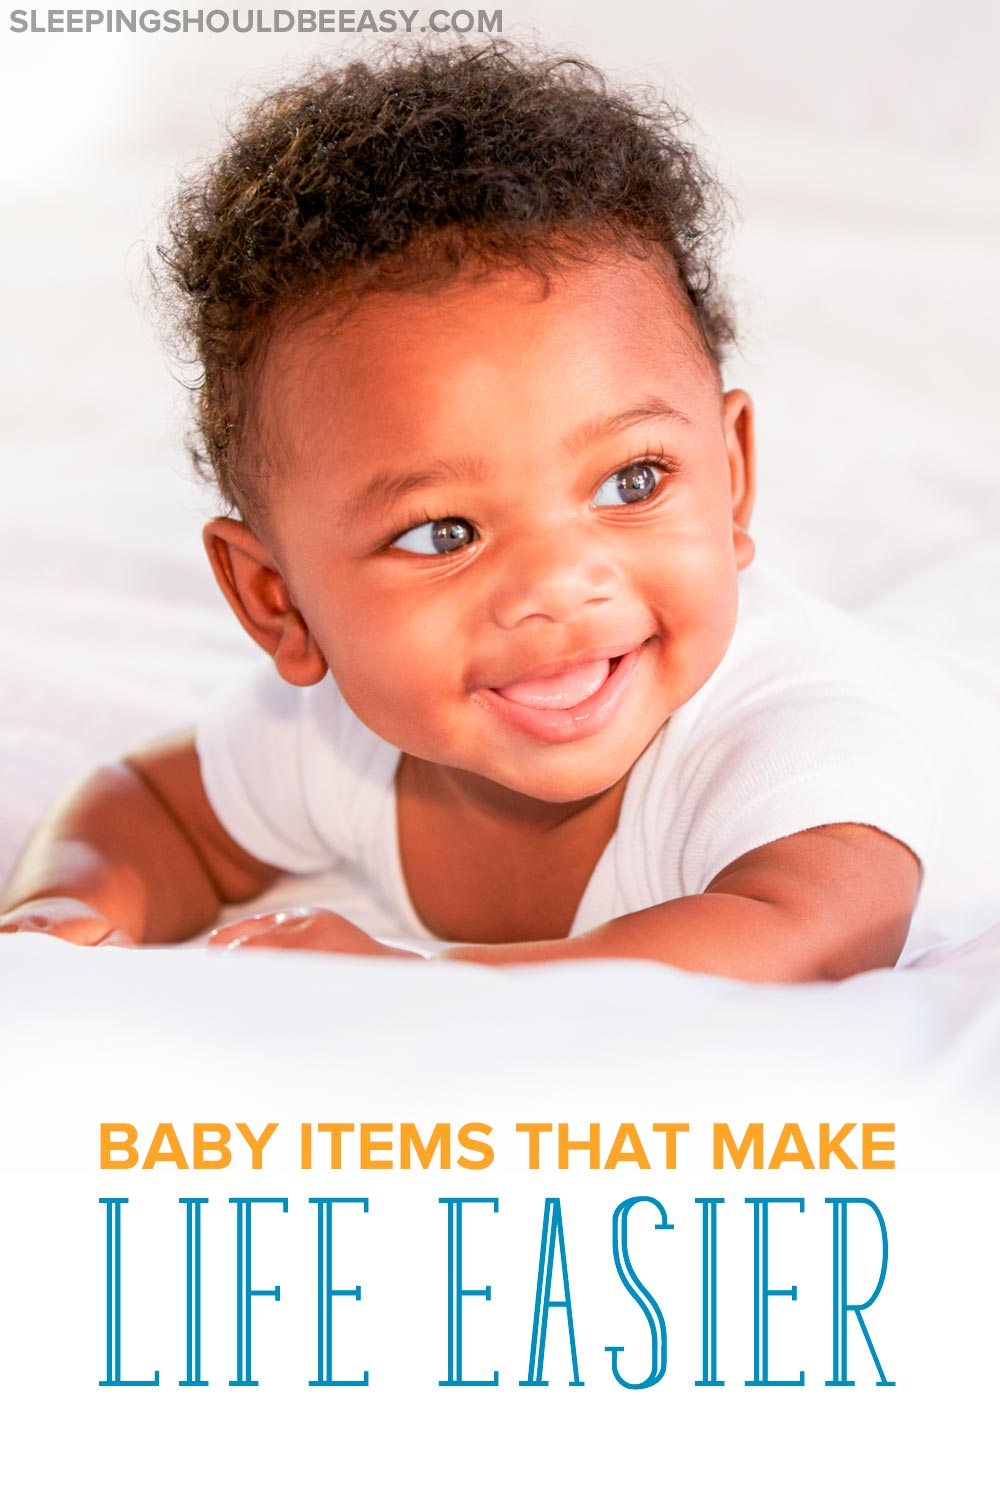 Looking to make life easier with a new baby? Check out these baby must haves: products and tools to save time and add convenience to your parenting days.